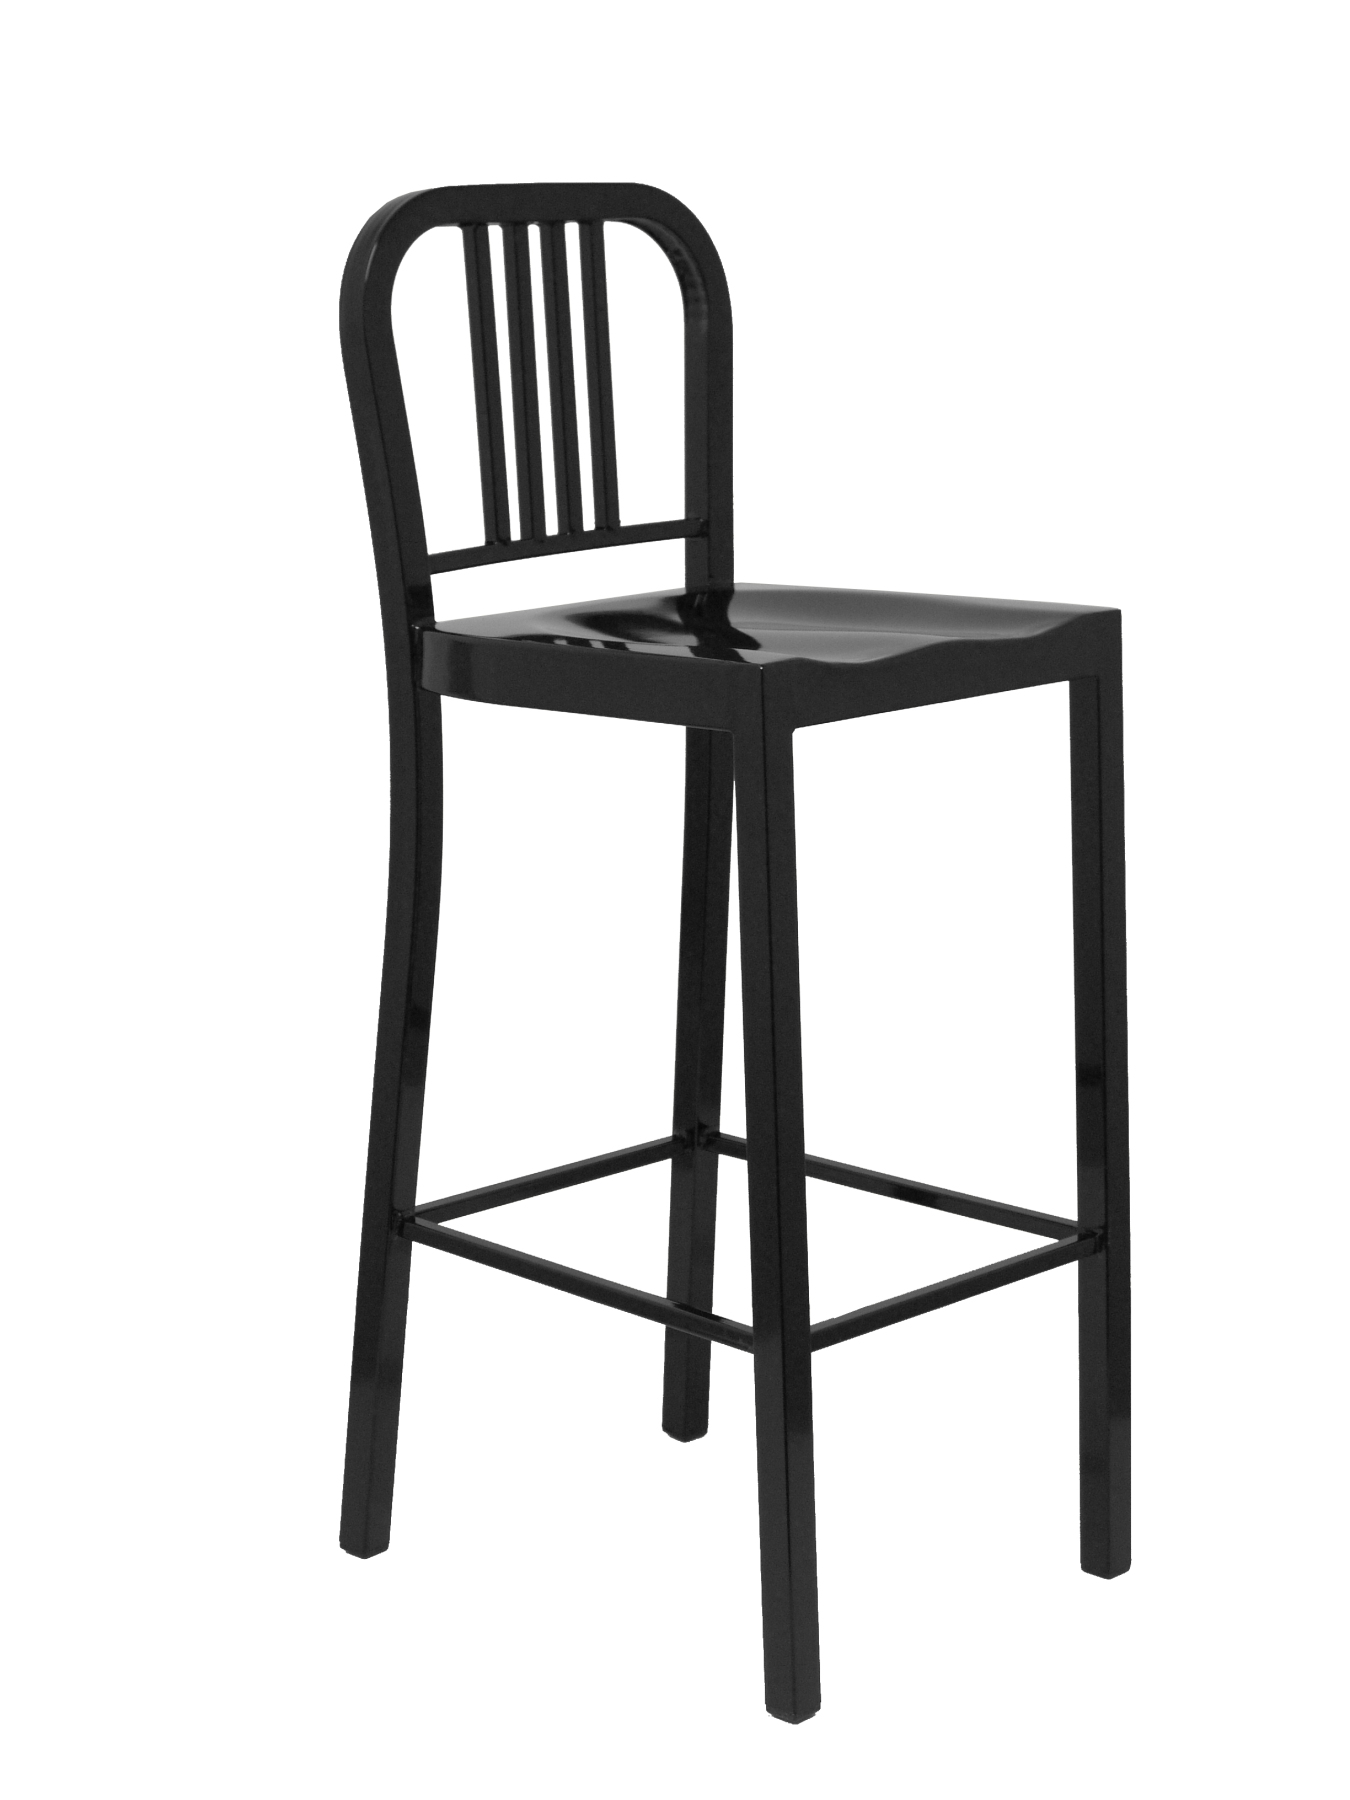 Barroom Stool Fixed 4-leg With Footrest, Made In Steel Color Black PIQUERAS & CURLED Model Uclés